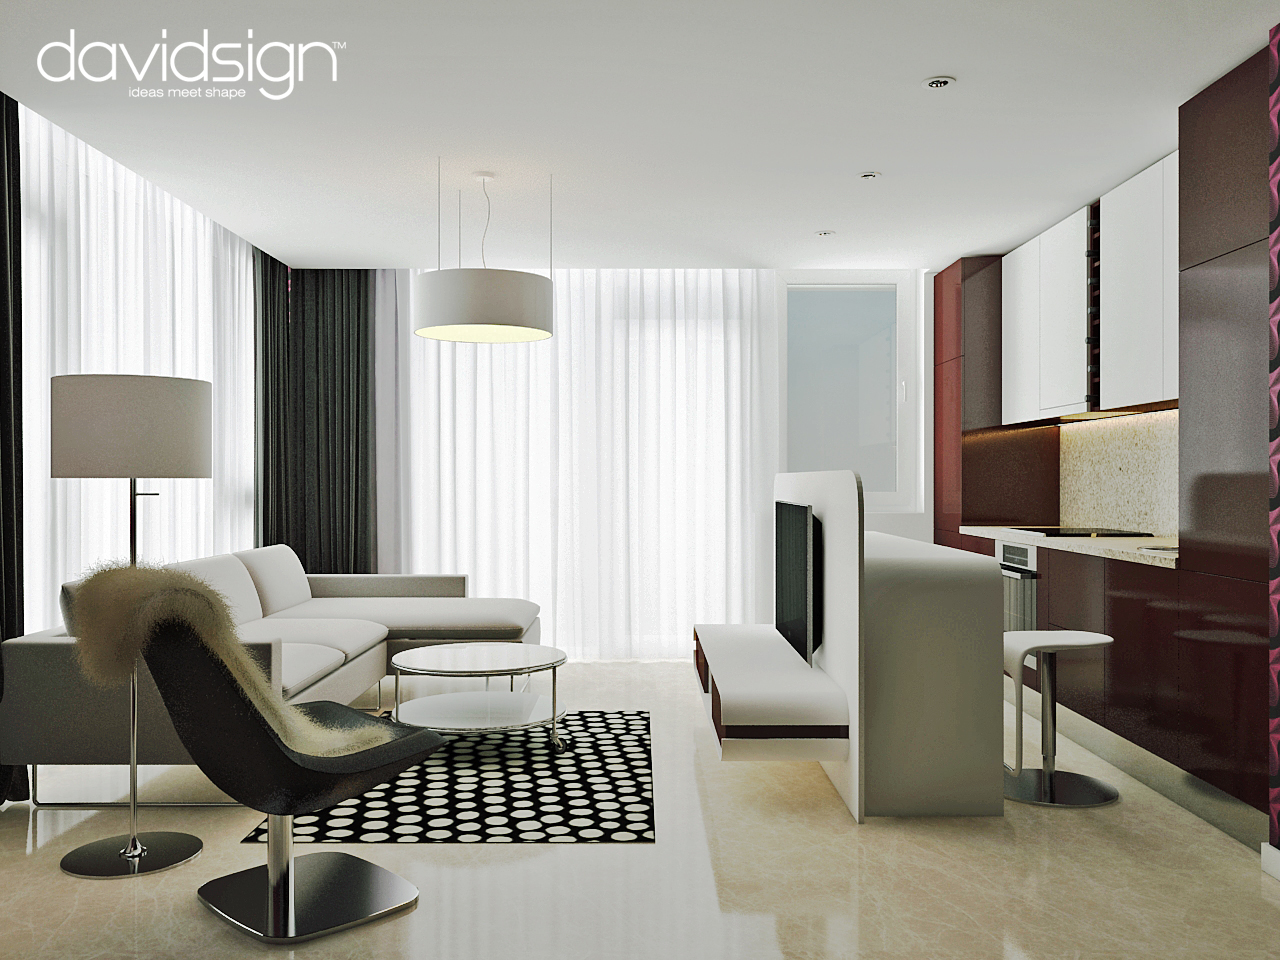 Design interior apartament bloc ared oradea davidsign blog for Image interior design living room